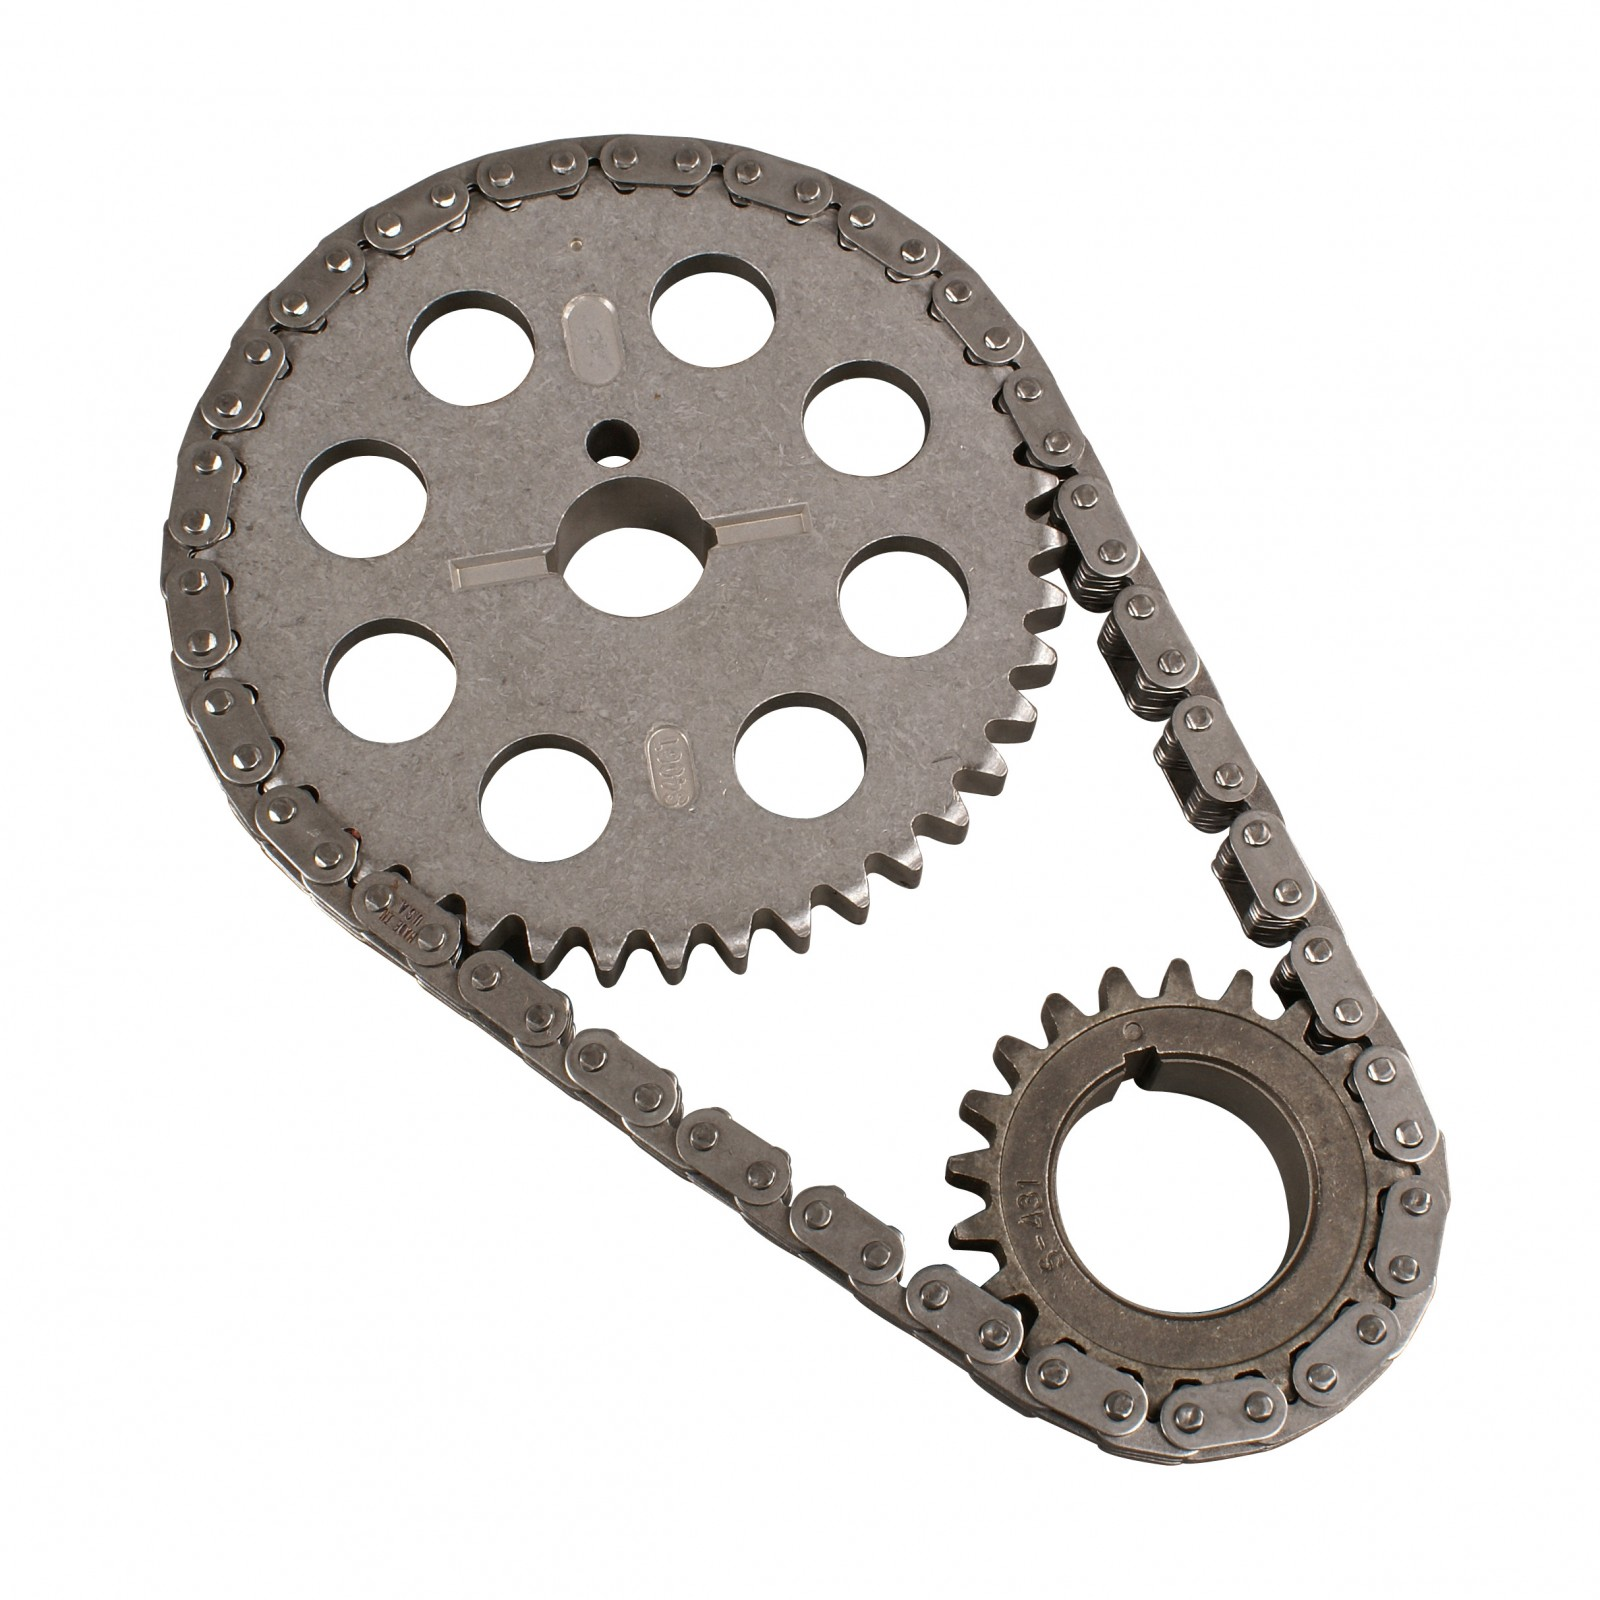 Timing Chain Tech: Standard Vs. Roller Timing Chains